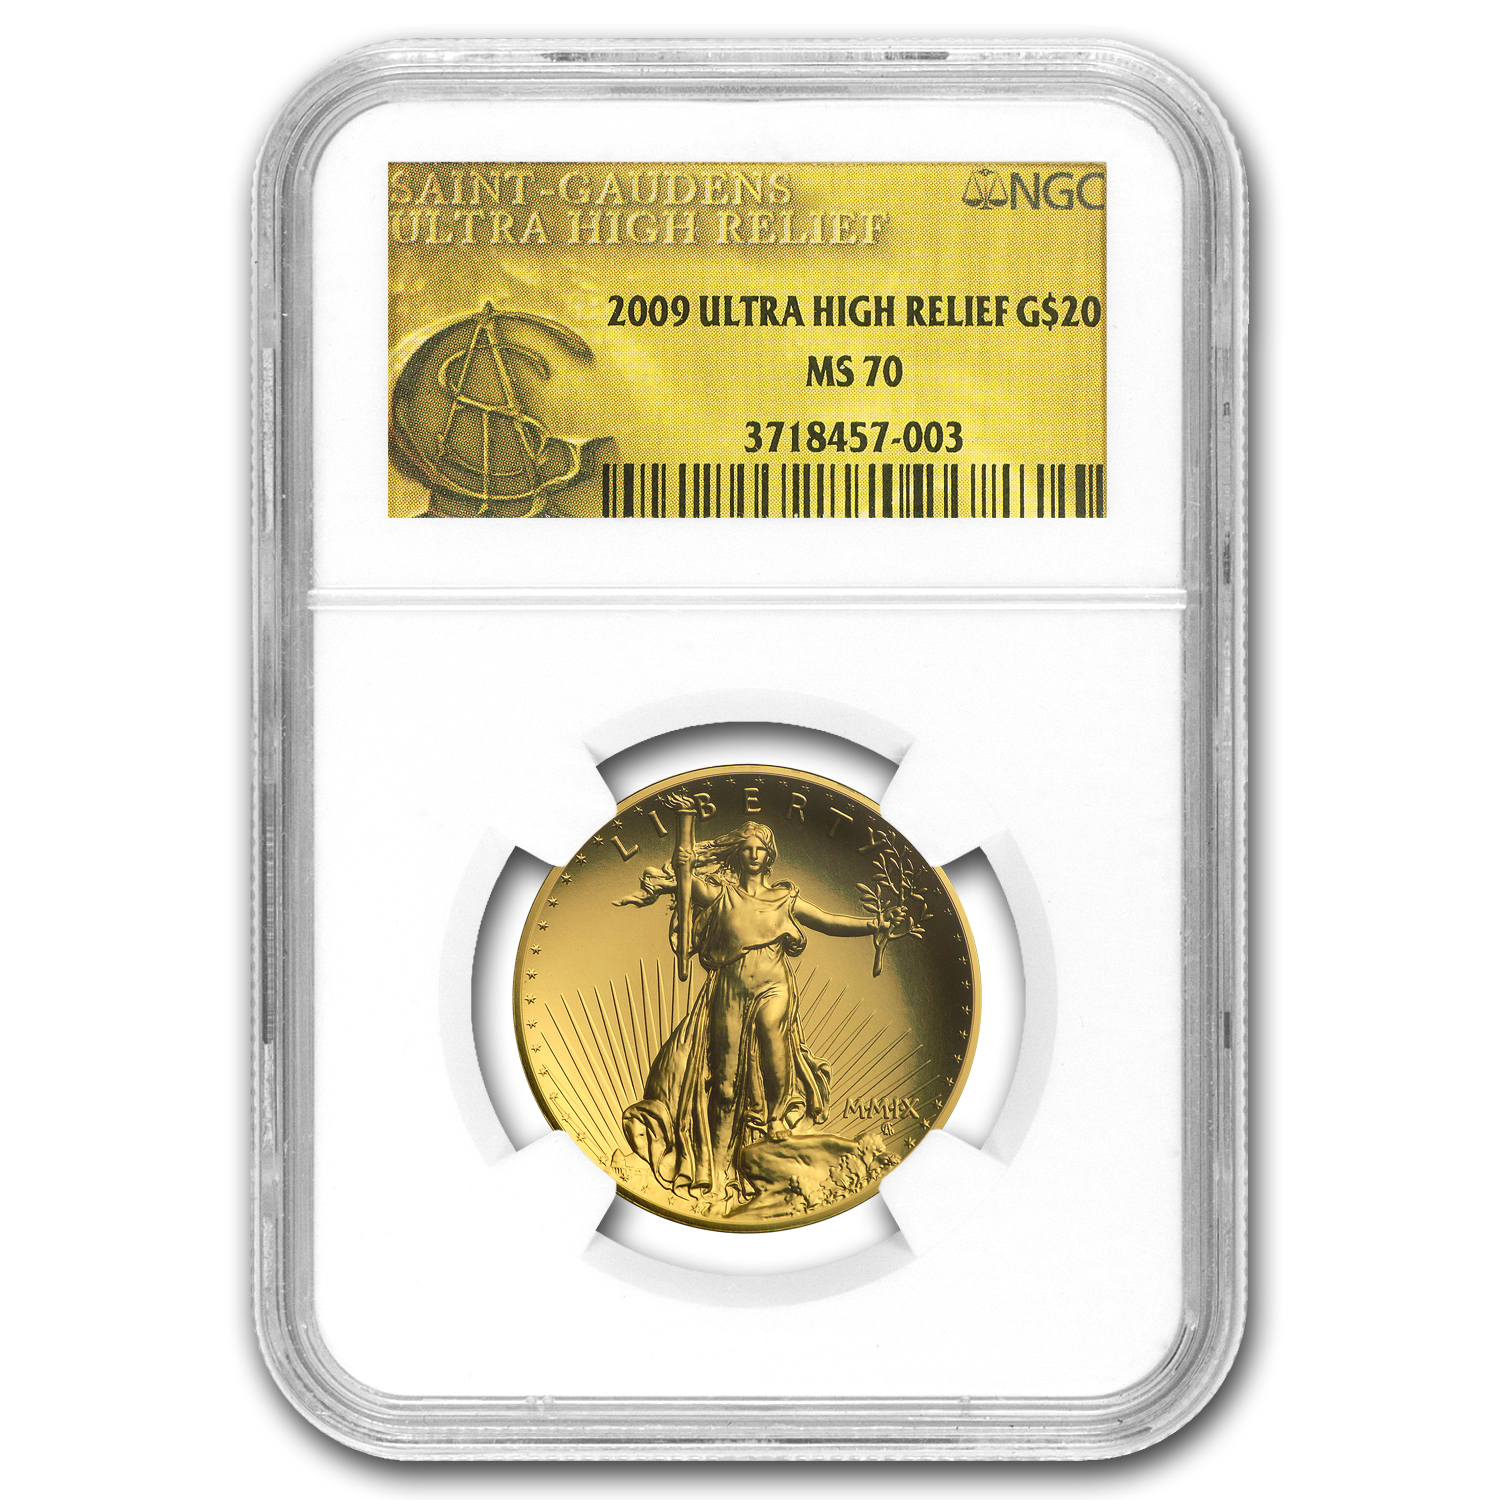 2009 Ultra High Relief Gold Double Eagle MS-70 NGC (Gold Label)